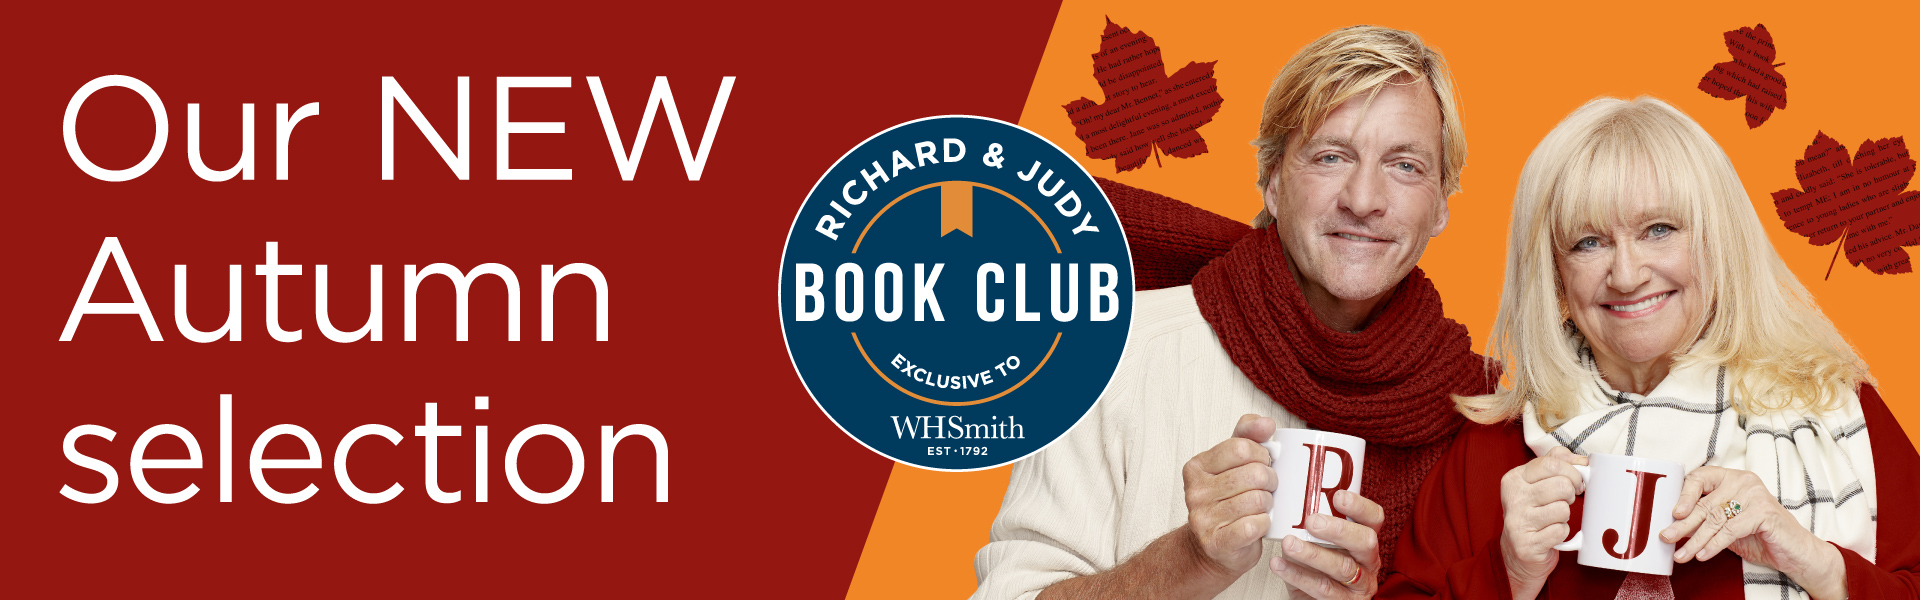 The Richard and Judy Book Club September 2020